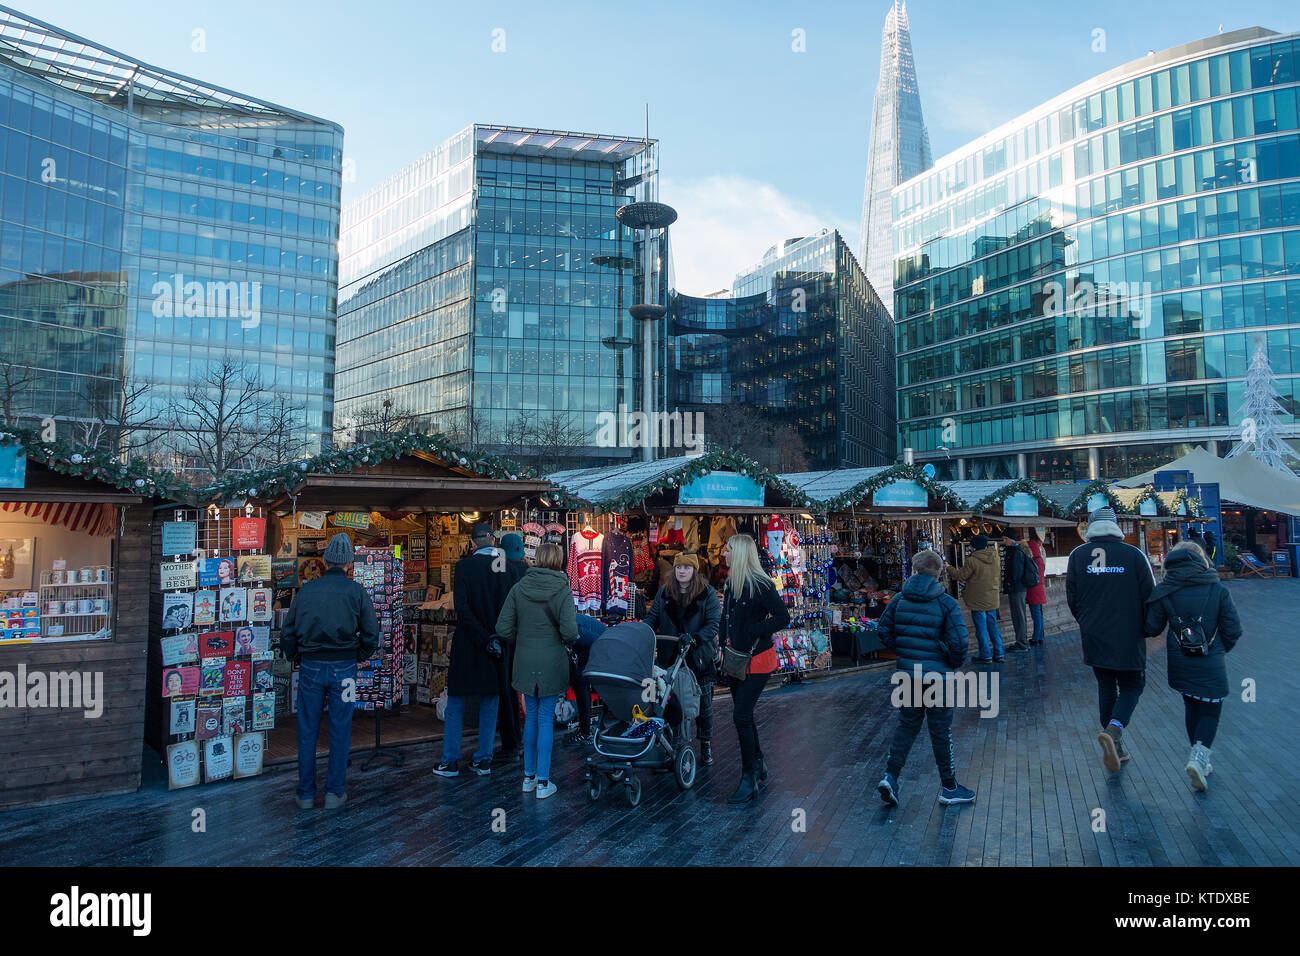 Christmas Market Stalls with The Shard Skyscraper and Modern Office Buildings on the South Bank River Thames London - Stock Image